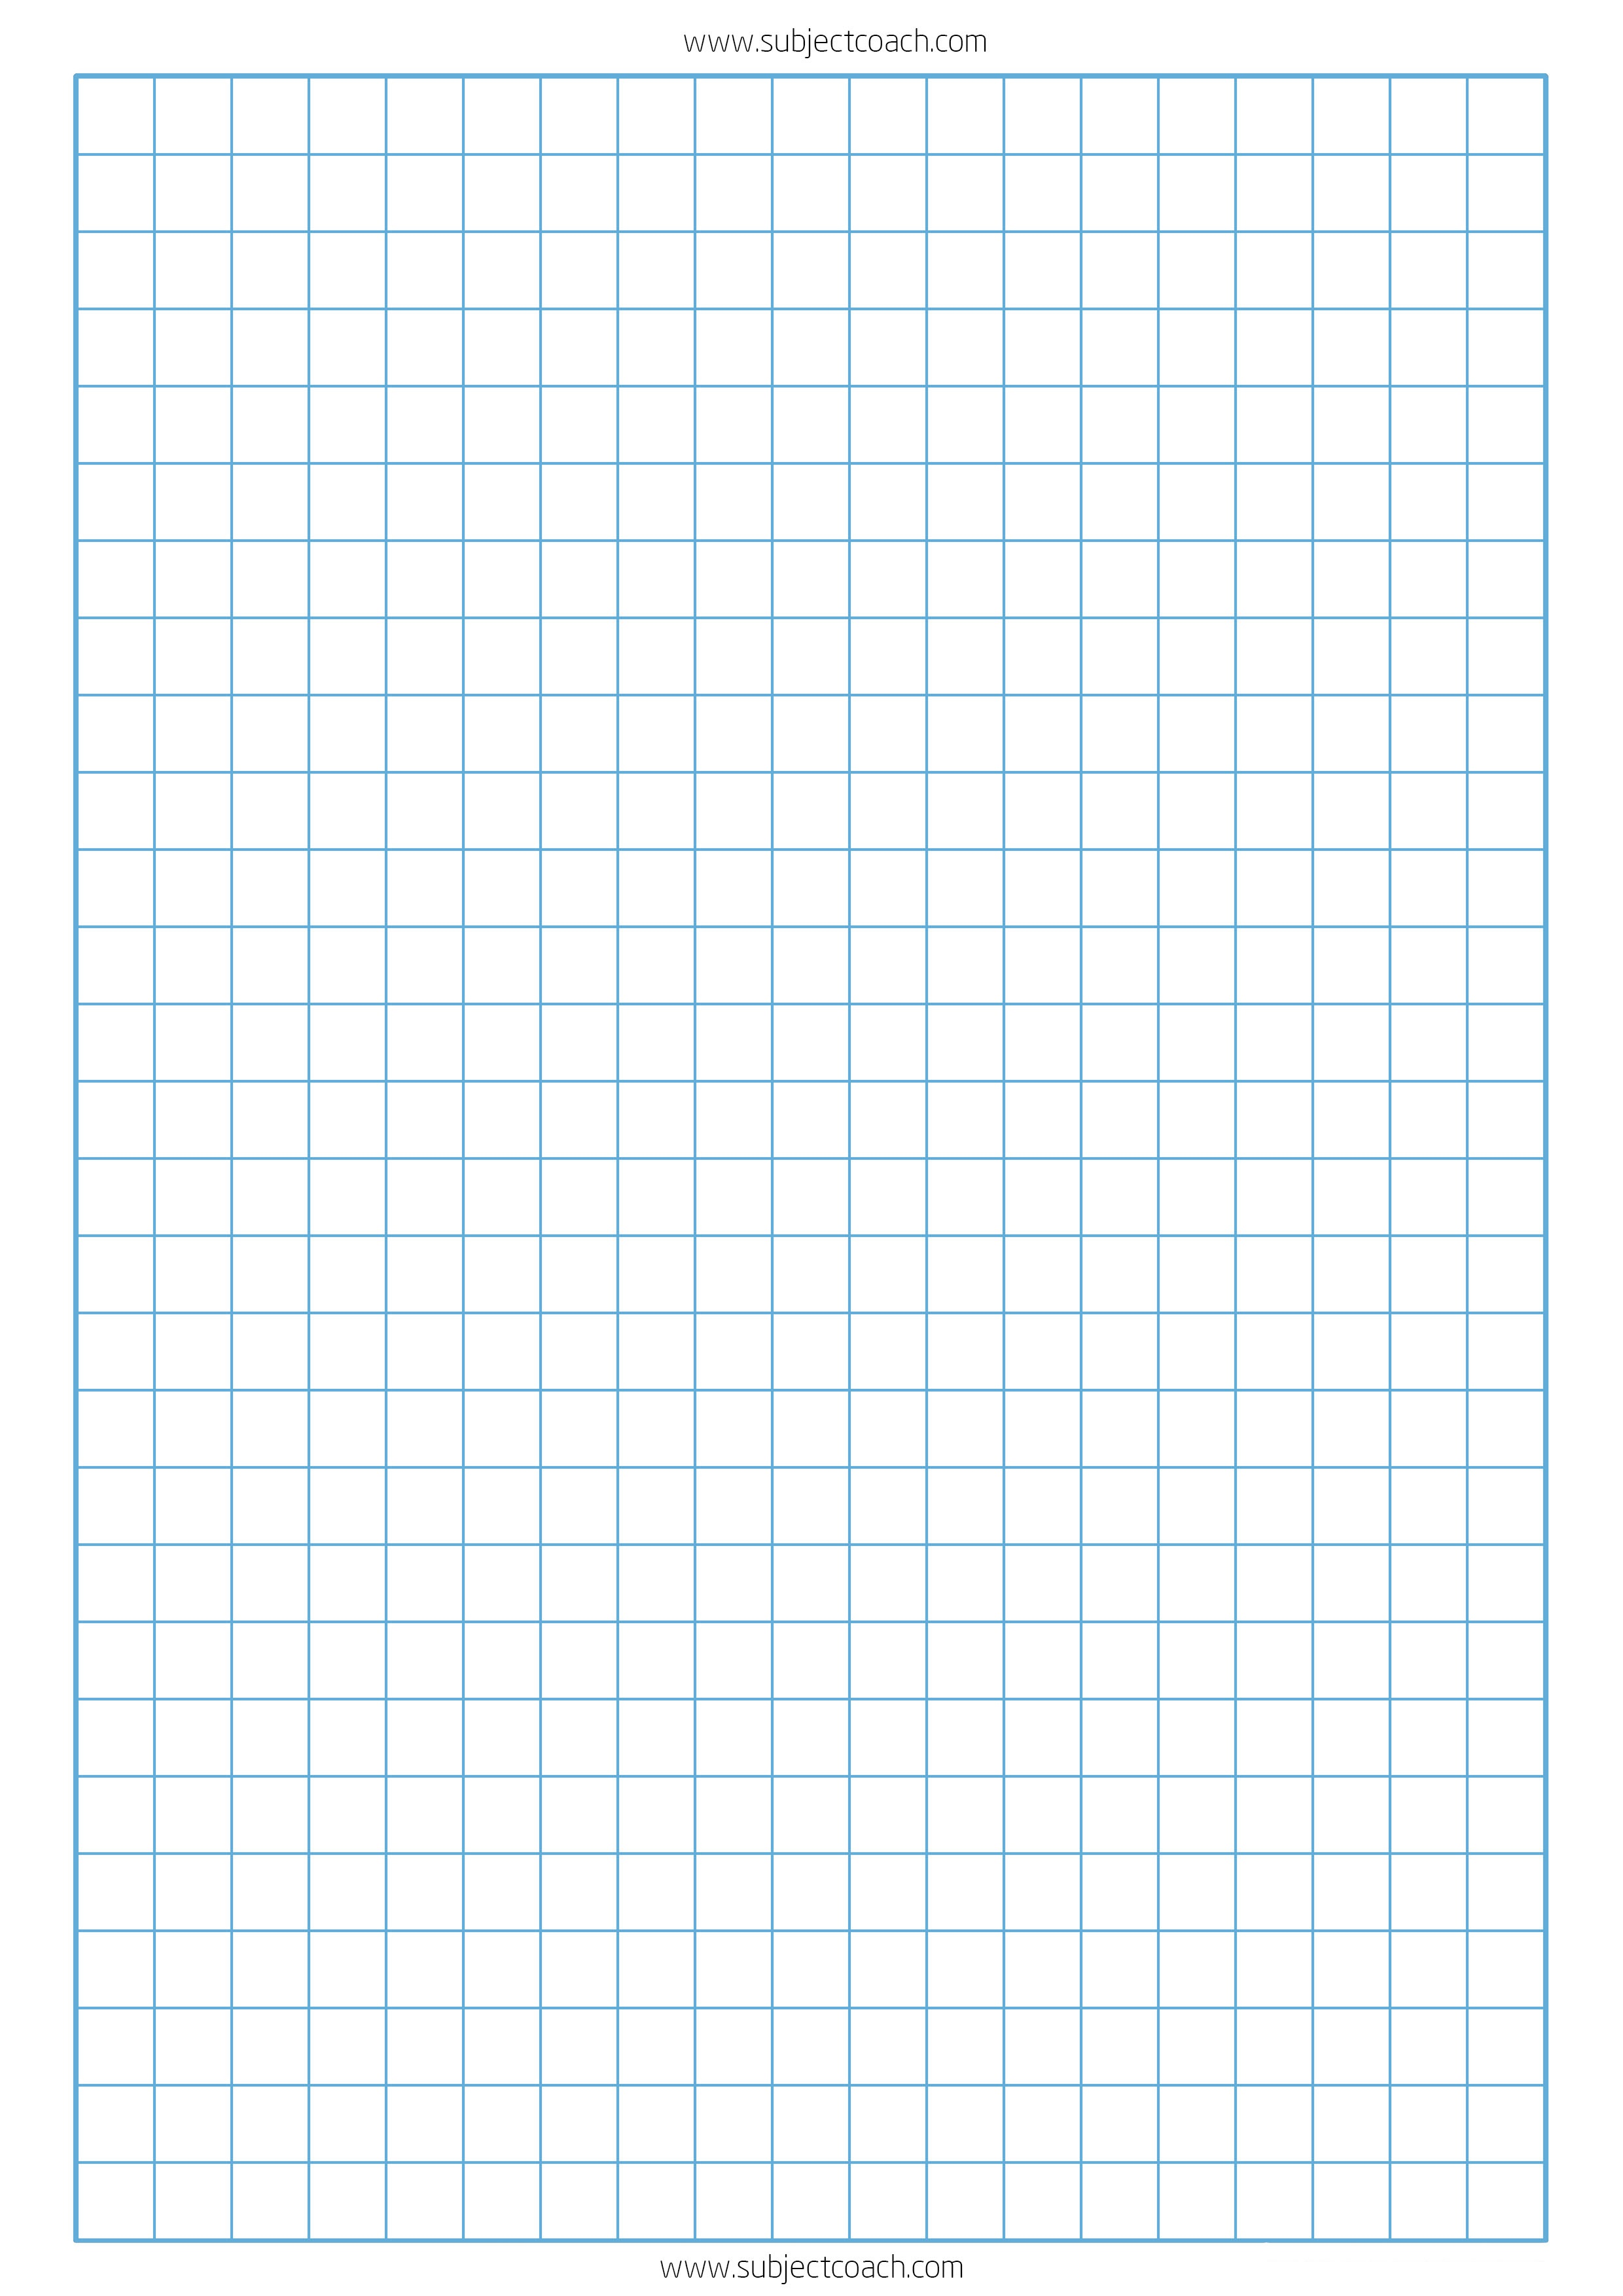 Free Printable Graph Paper 1Cm For A4 Paper   Subjectcoach - Free Printable Squared Paper